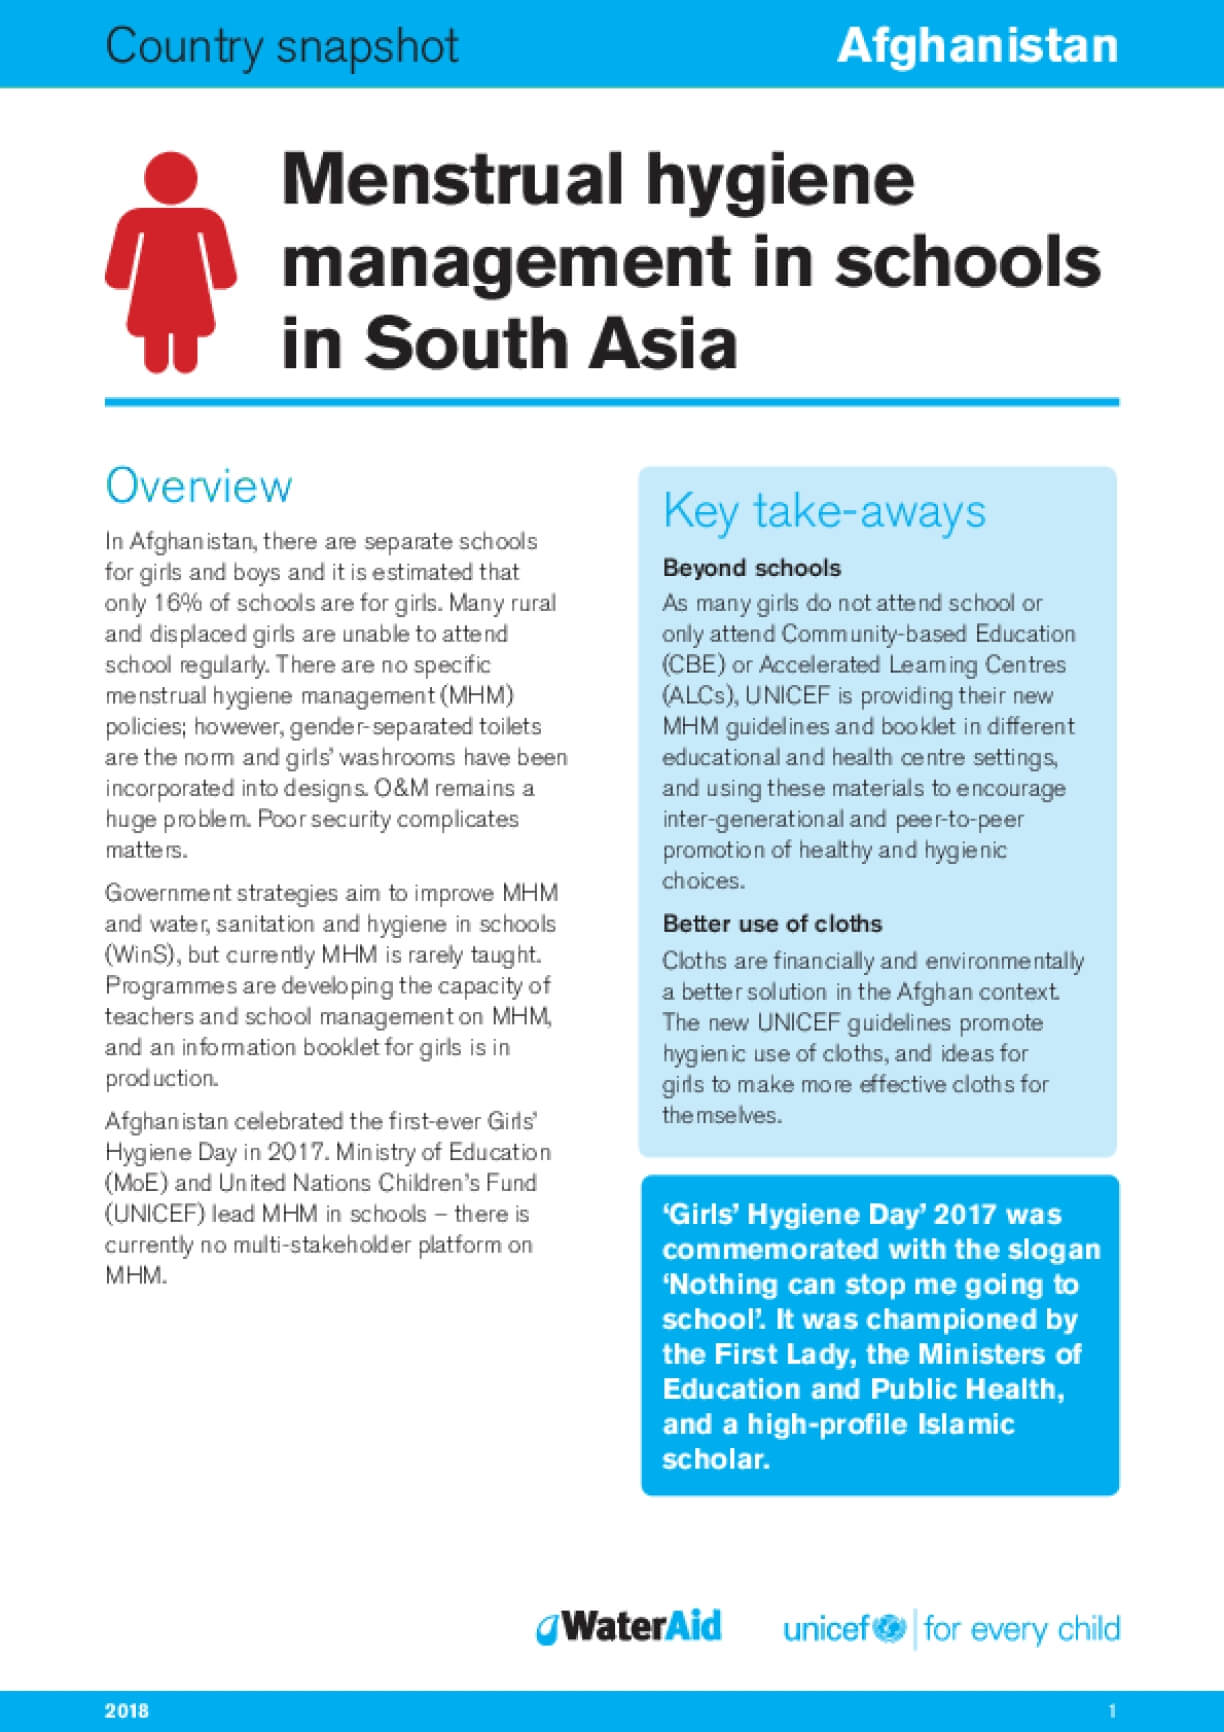 Menstrual hygiene management in schools in South Asia: Afghanistan